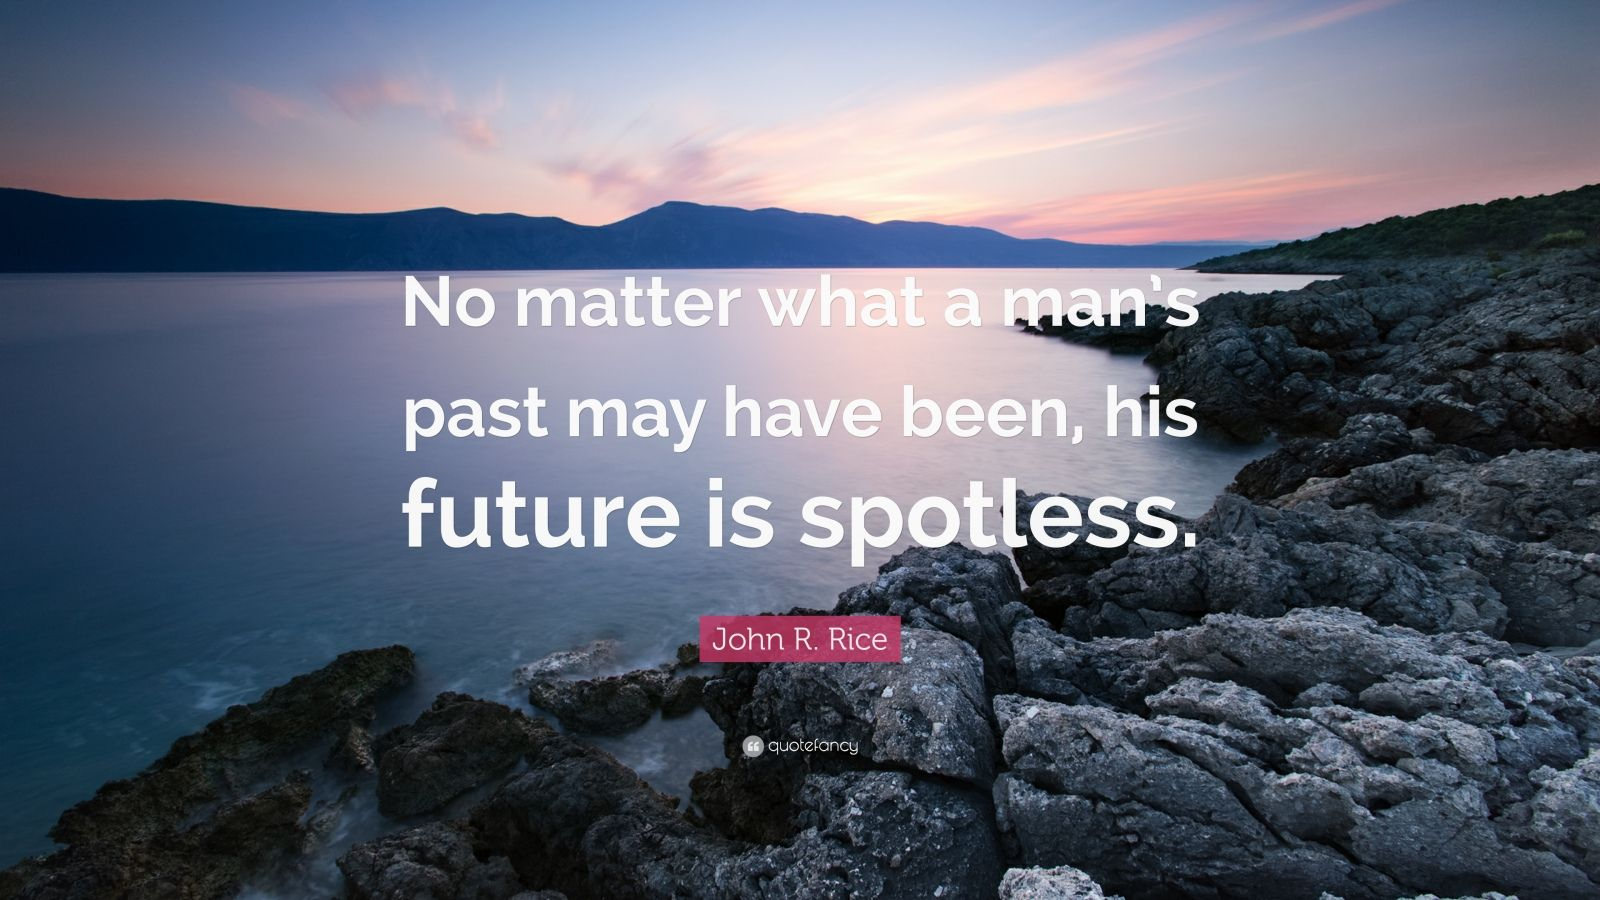 """John R. Rice Quote: """"No matter what a man's past may have been, his future is spotless."""""""